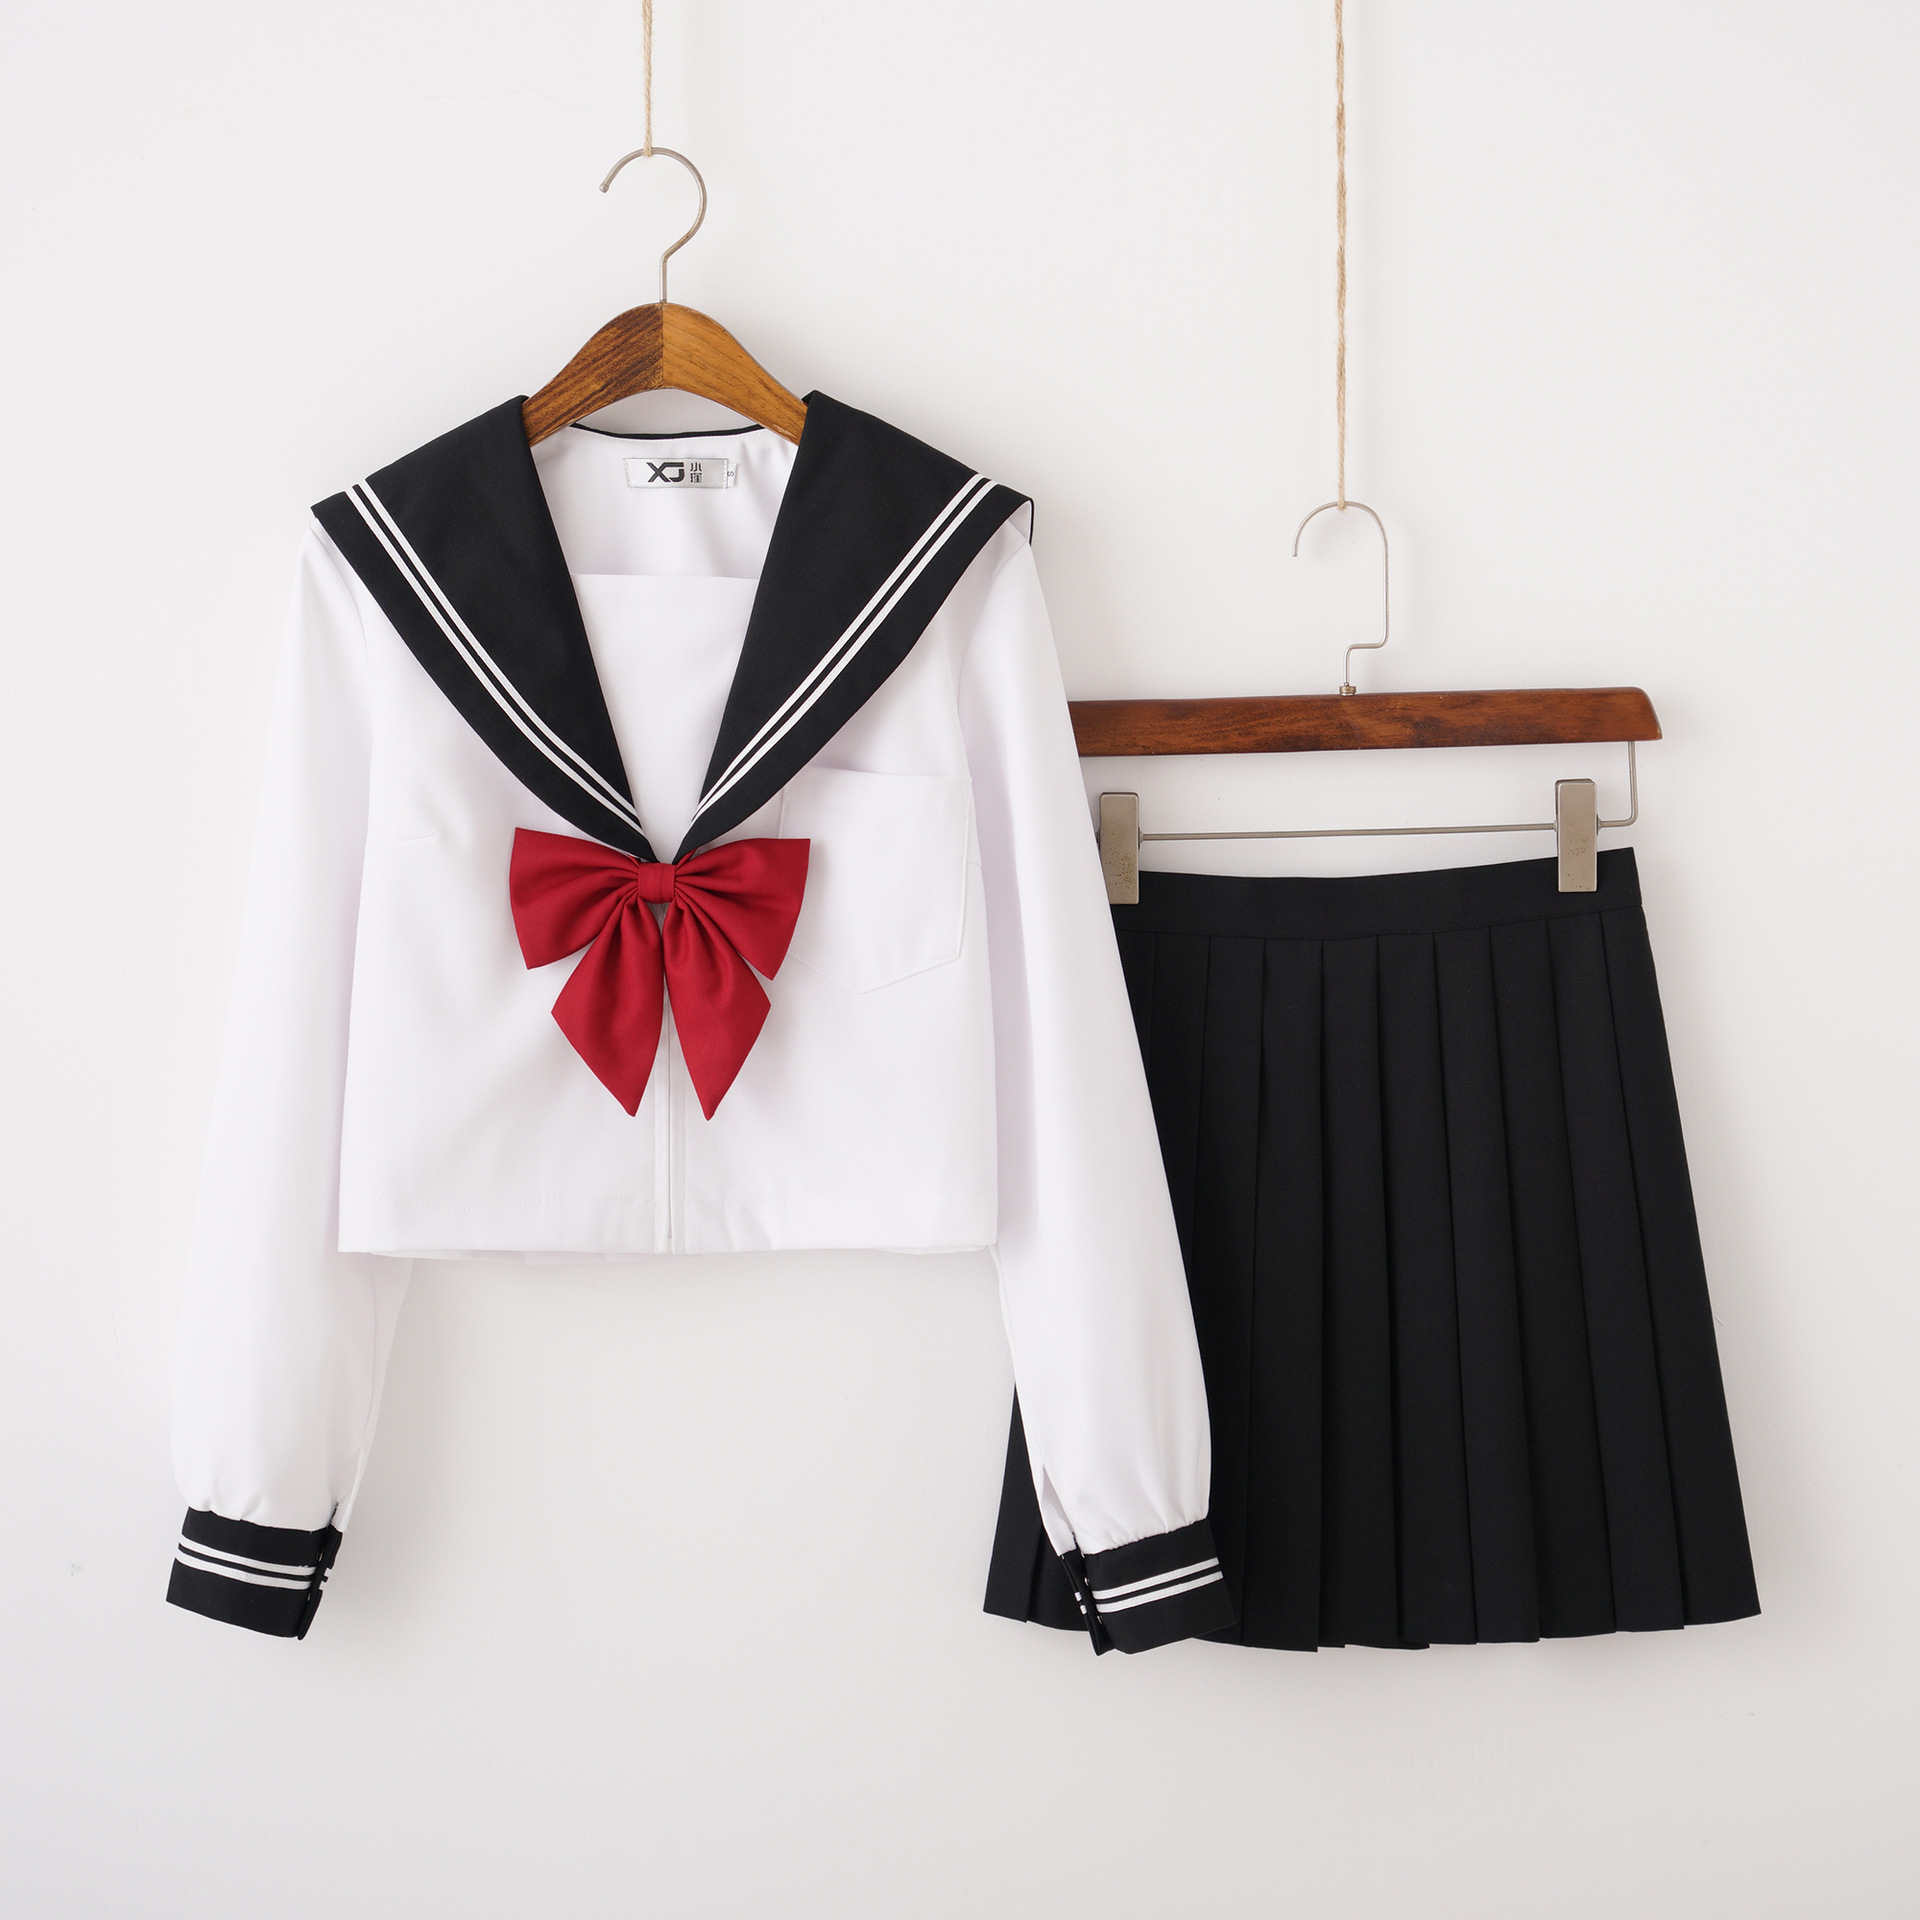 2019 Autumn Japanese School Uniforms Girls Cute Sailor Suits White Tops Black Pleated Skirt Red Bow Tie Sets Cosplay Jk Costumes